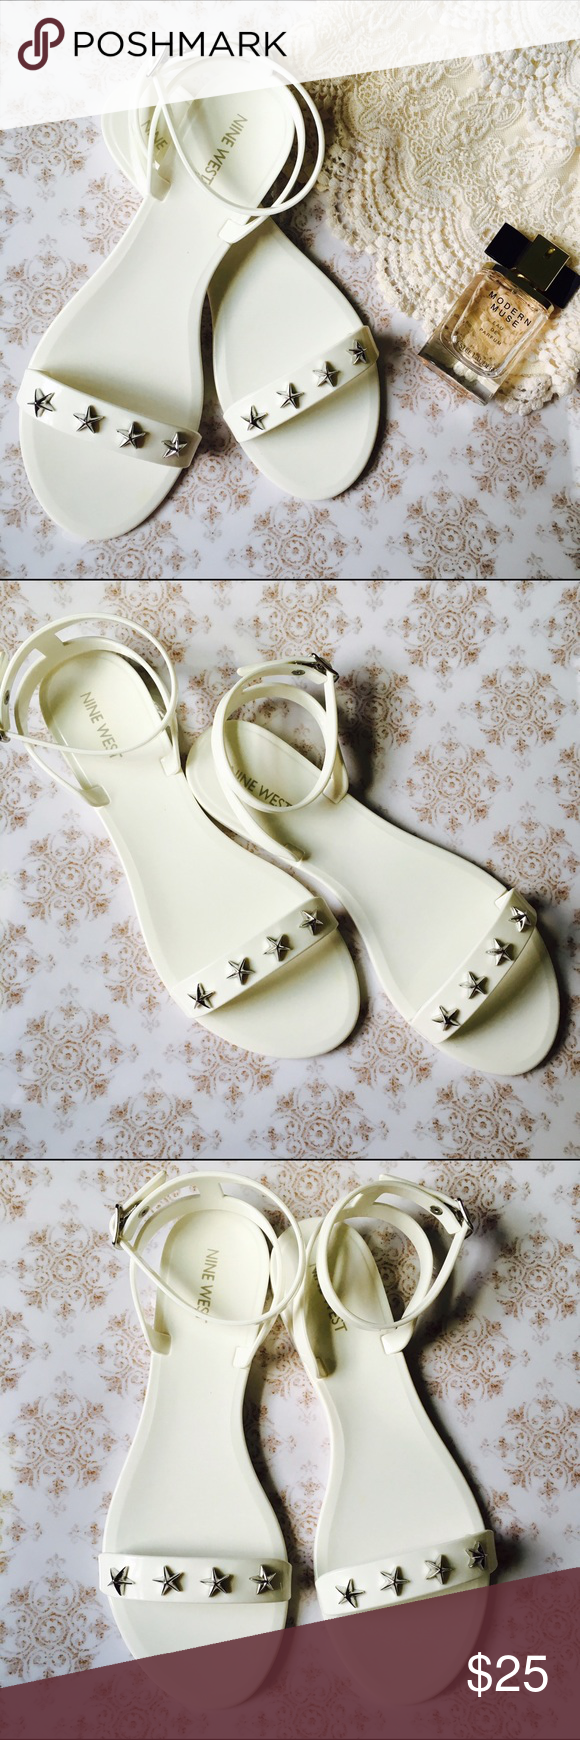 White Strappy Nine West Jelly Sandals These shoes are super cute and go with any outfit! I've only worn them twice and they are in excellent condition. There is very minimal damage on the bottom of the shoe from them touching the ground. They are a plastic/ jelly material. They are white with silver star accents. Feel free to ask questions, as I am always willing to negotiate price. Thanks! Nine West Shoes Sandals